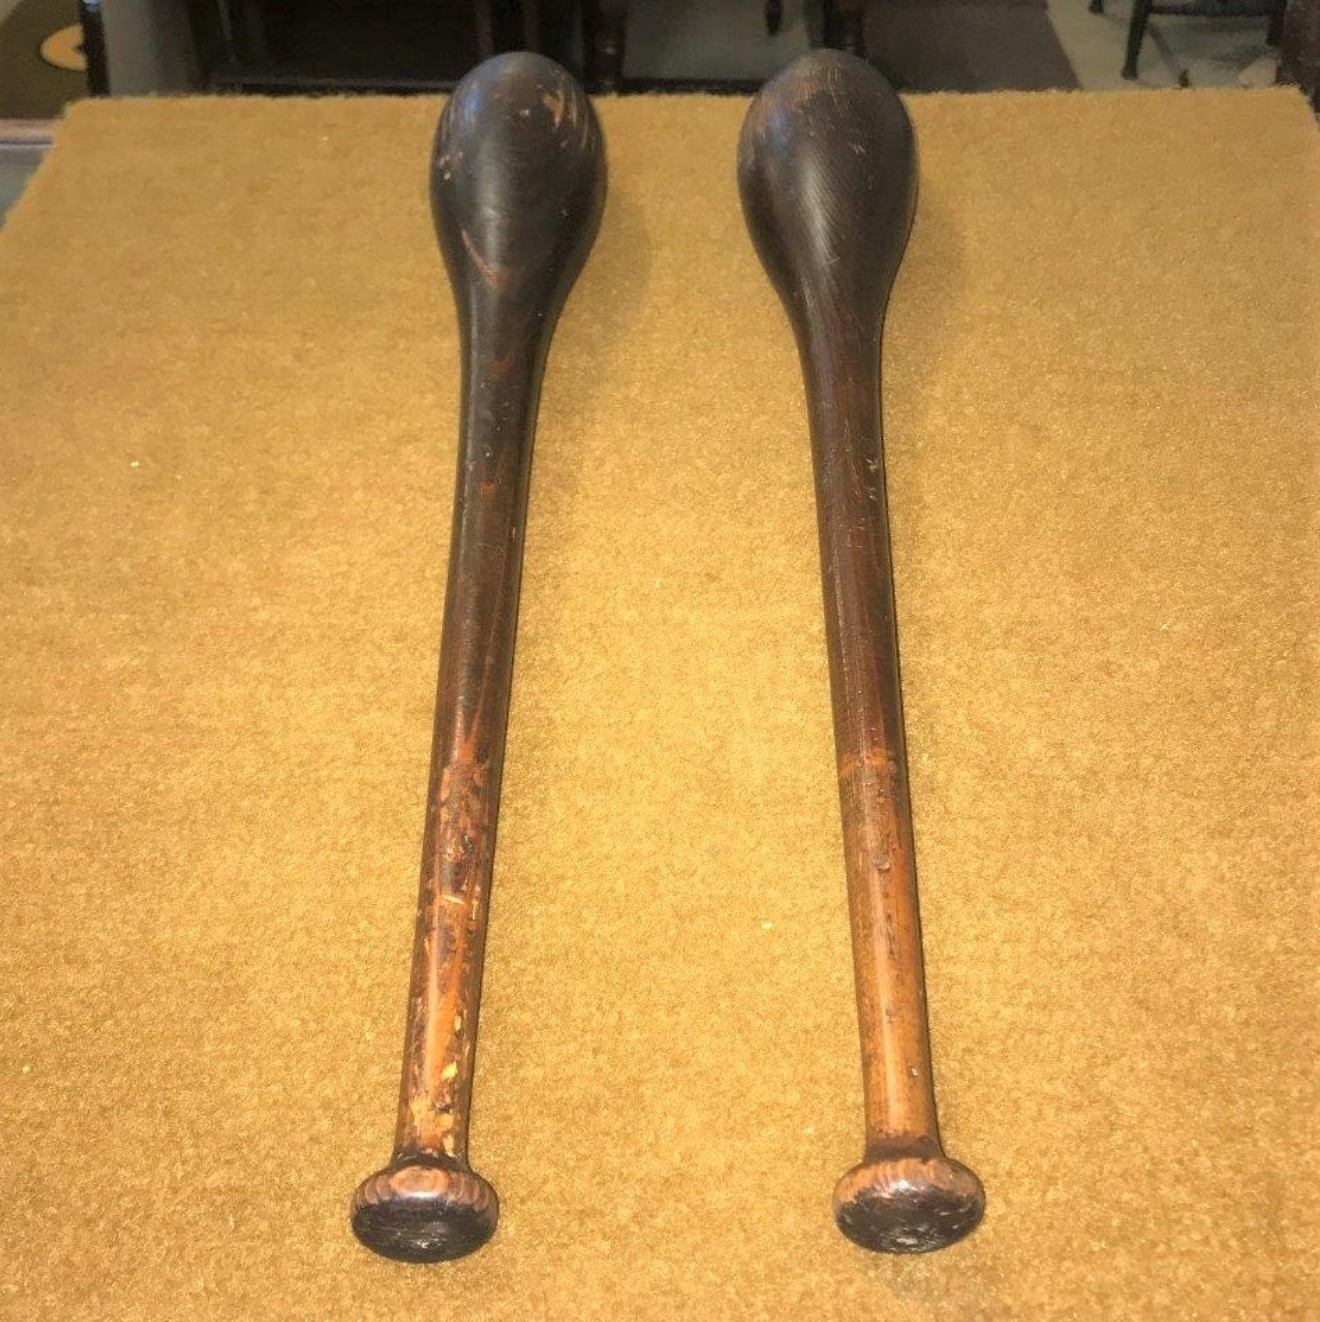 Pair of Antique Indian Exercise Clubs / Pins